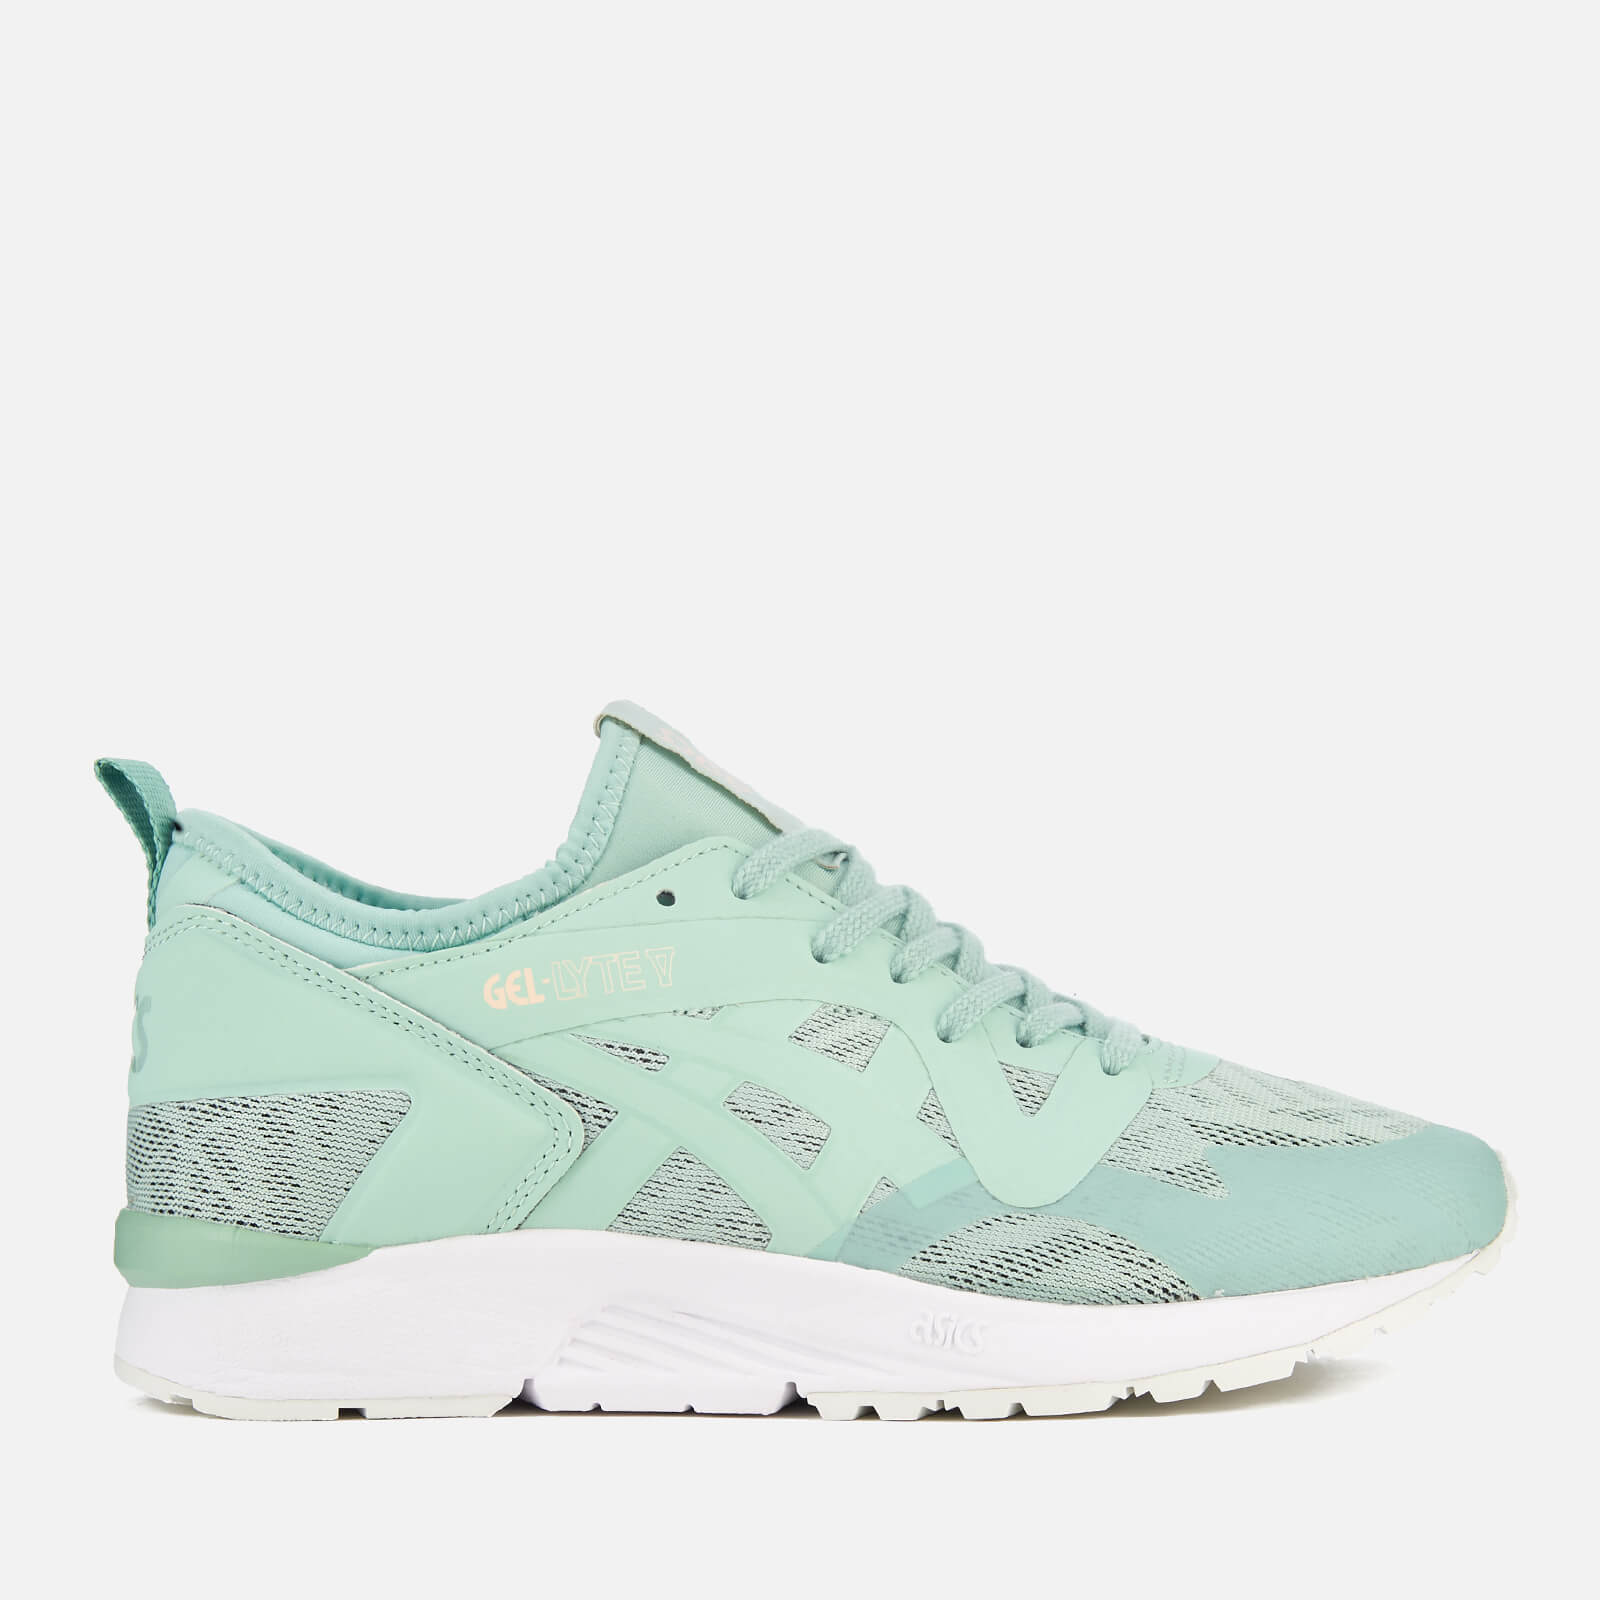 new style fe8f6 eed5c Asics Lifestyle Women s Gel-Lyte V NS Trainers - Gossamer Green Gossamer  Green - Free UK Delivery over £50